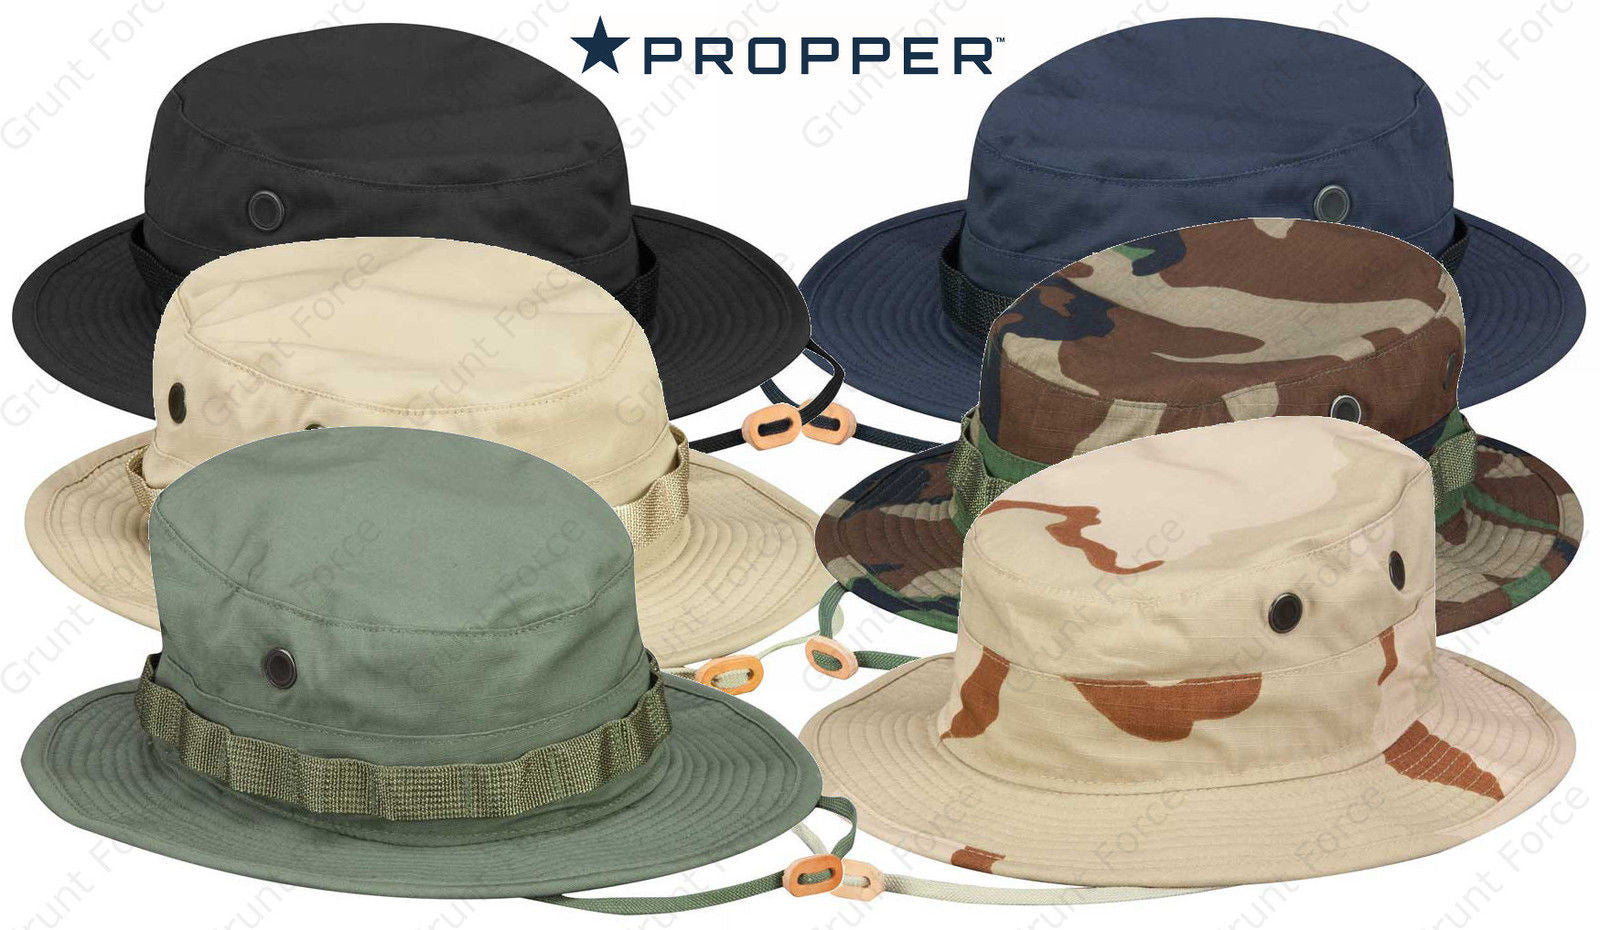 Propper Boonie Sun Hat 100% Cotton Tactical Bucket Hat Jungle Cap -  Mil-Spec. 9c8881d3171b